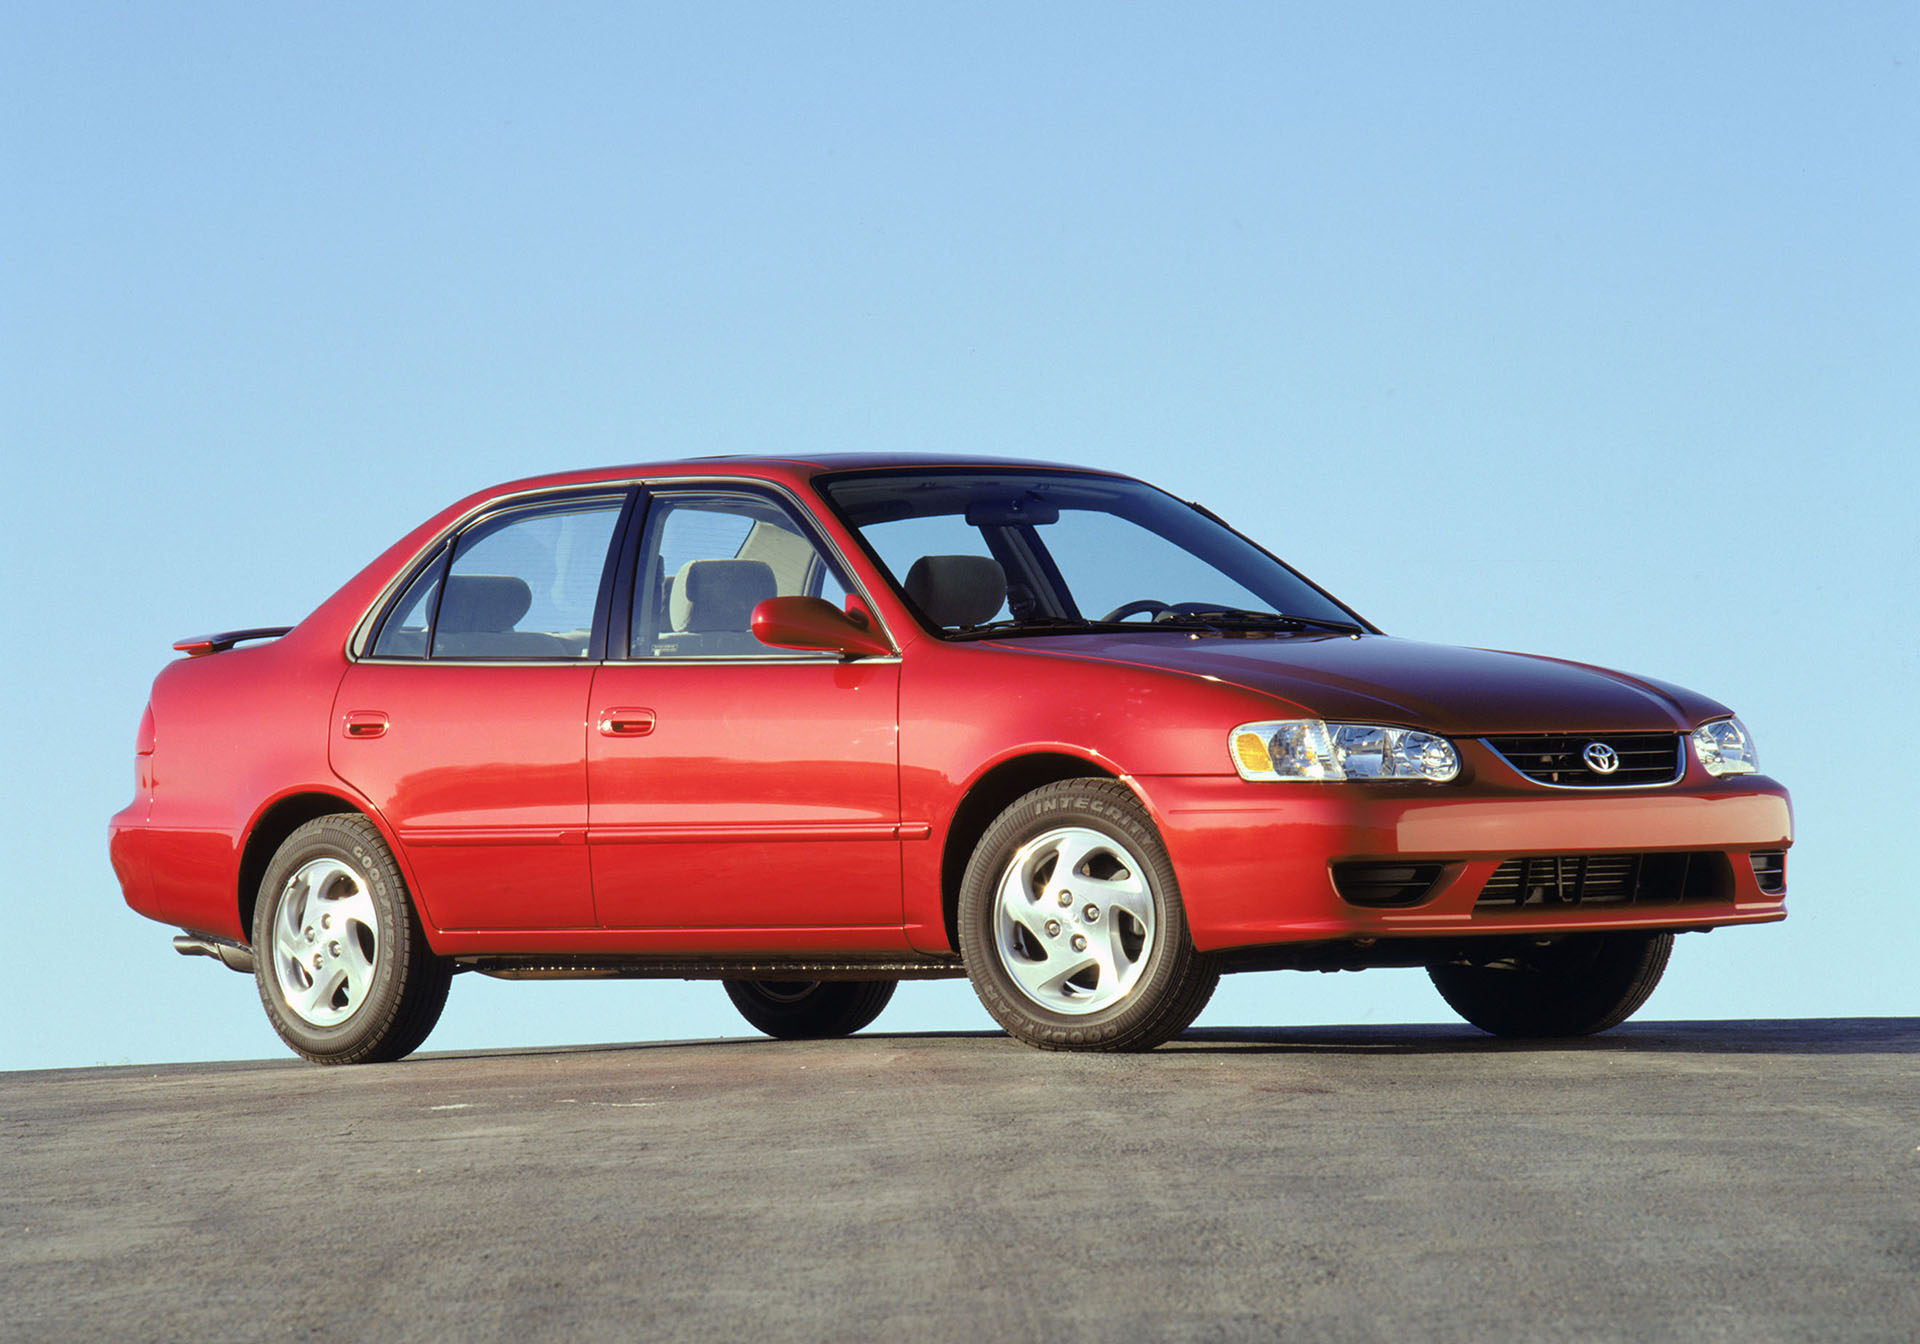 USA - The 8th Generation Corolla (1998 - 2002)